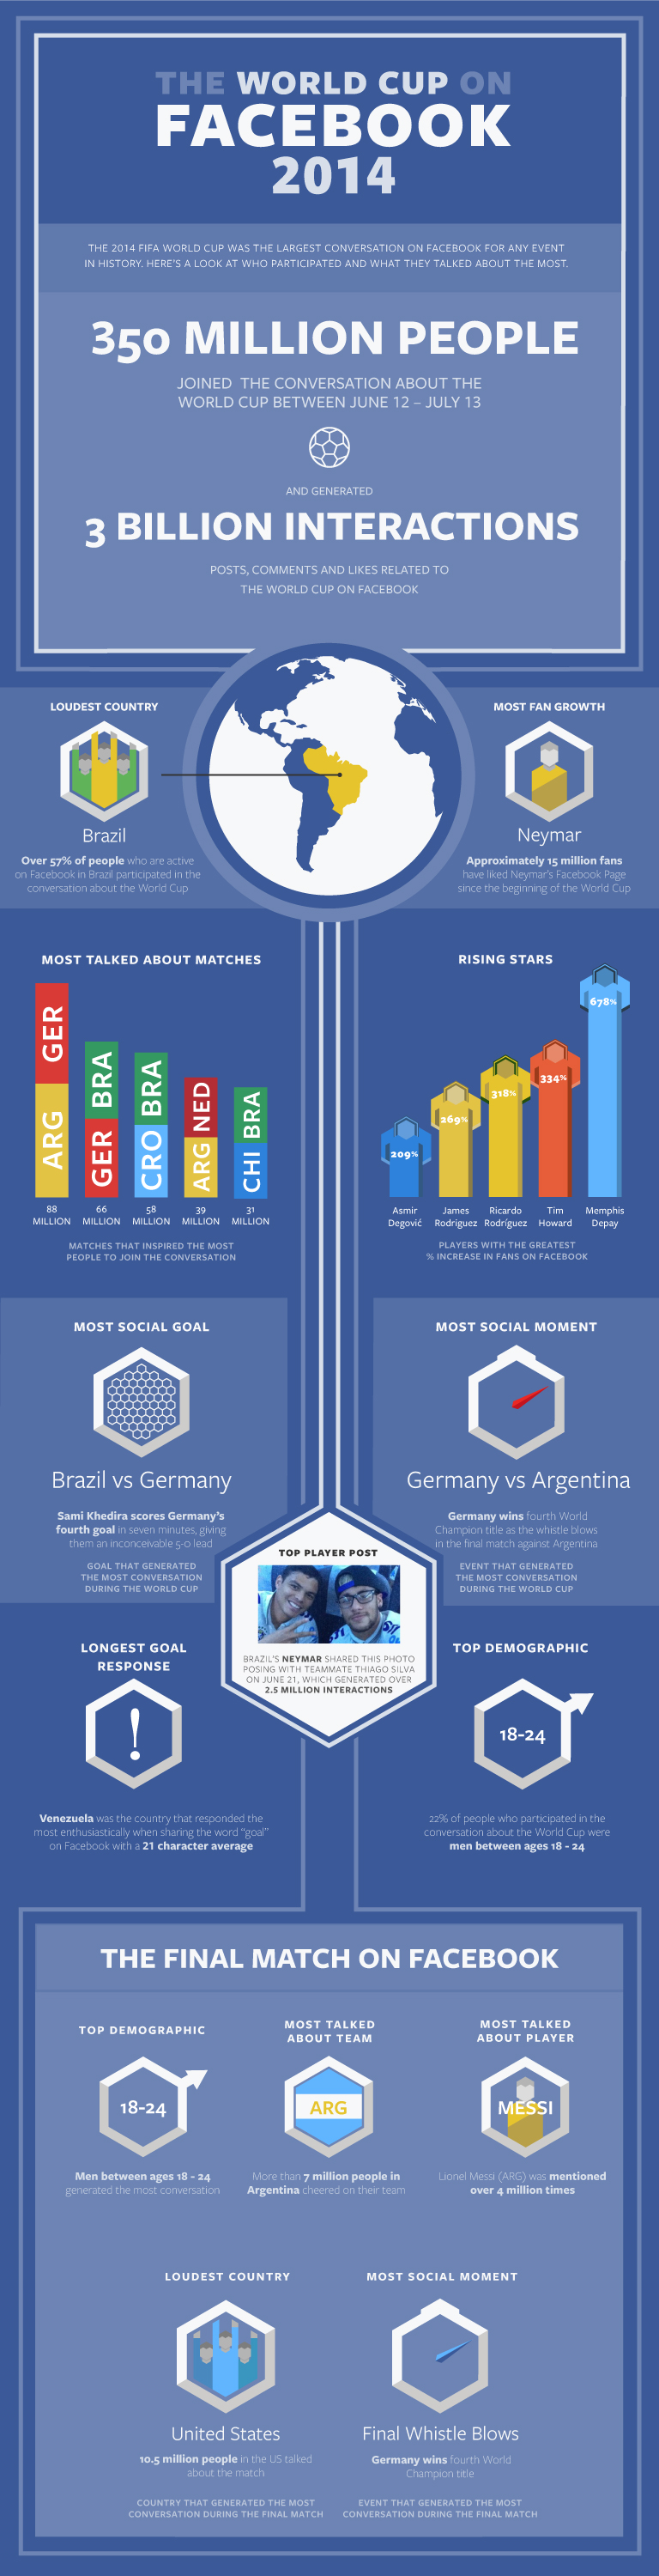 Facebook_WC_Infographic